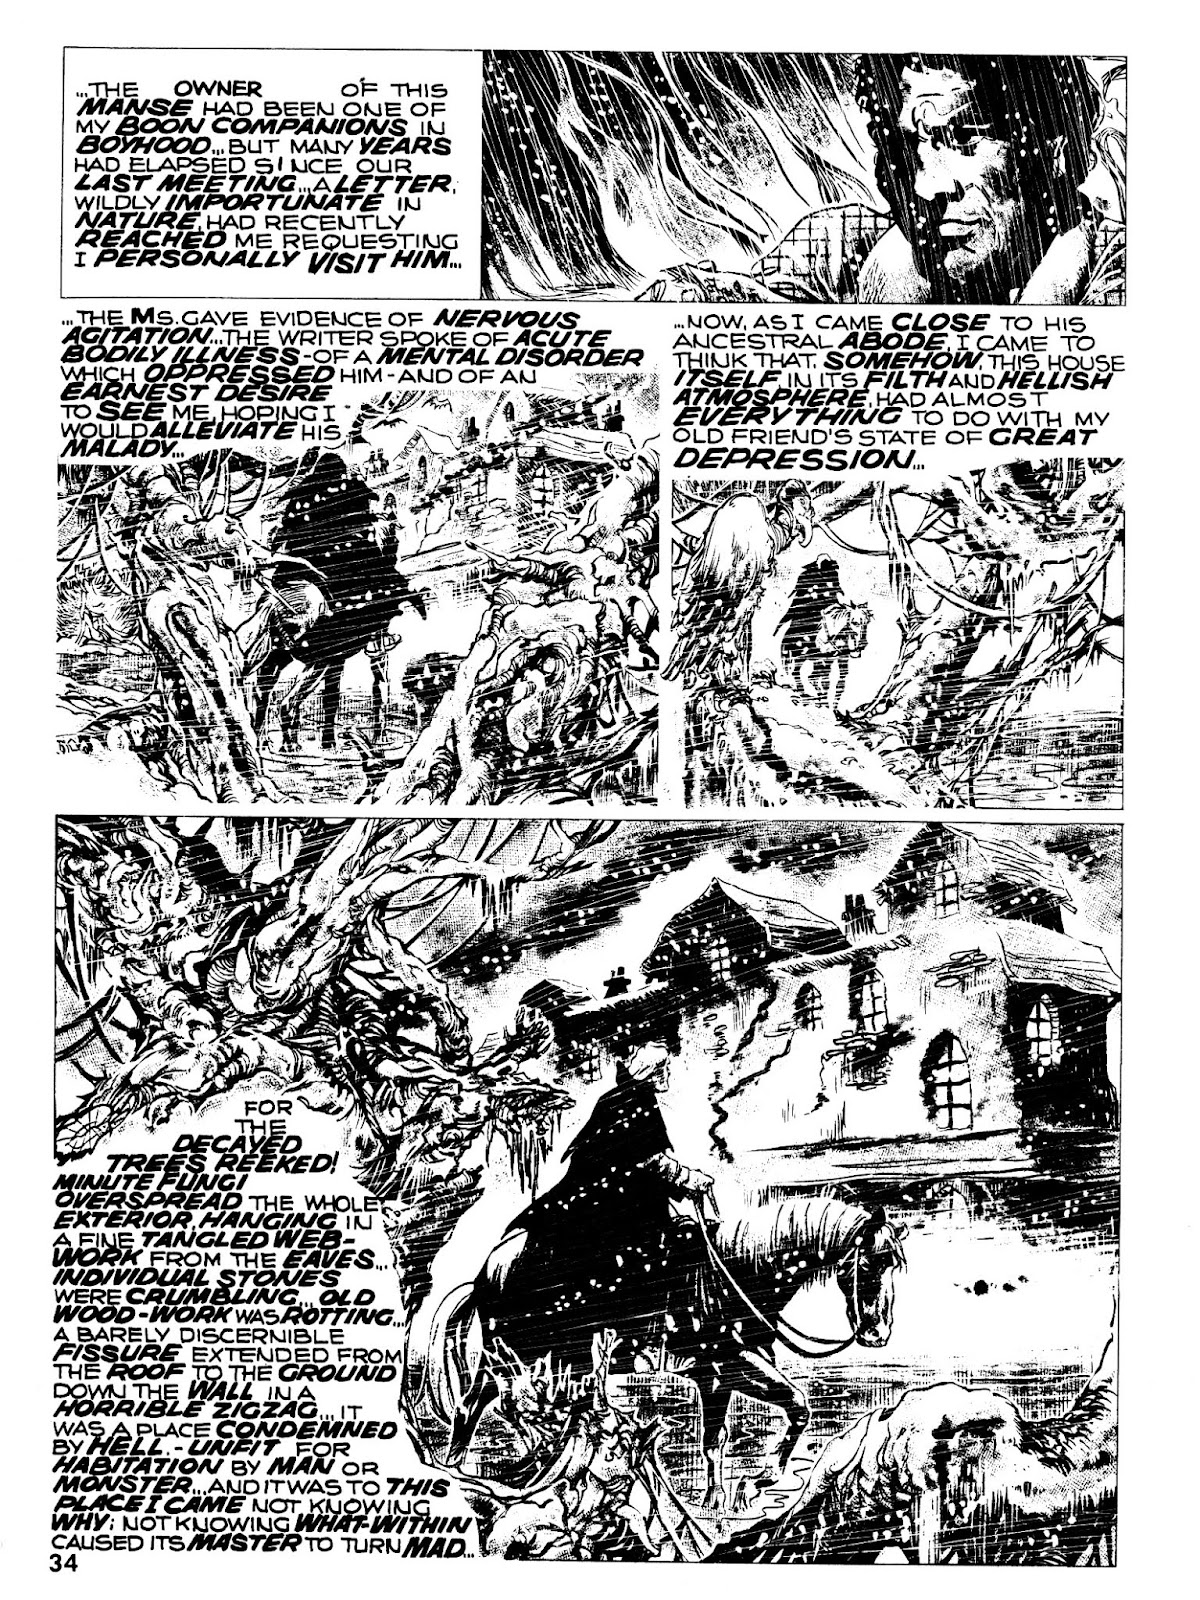 Scream (1973) issue 3 - Page 34